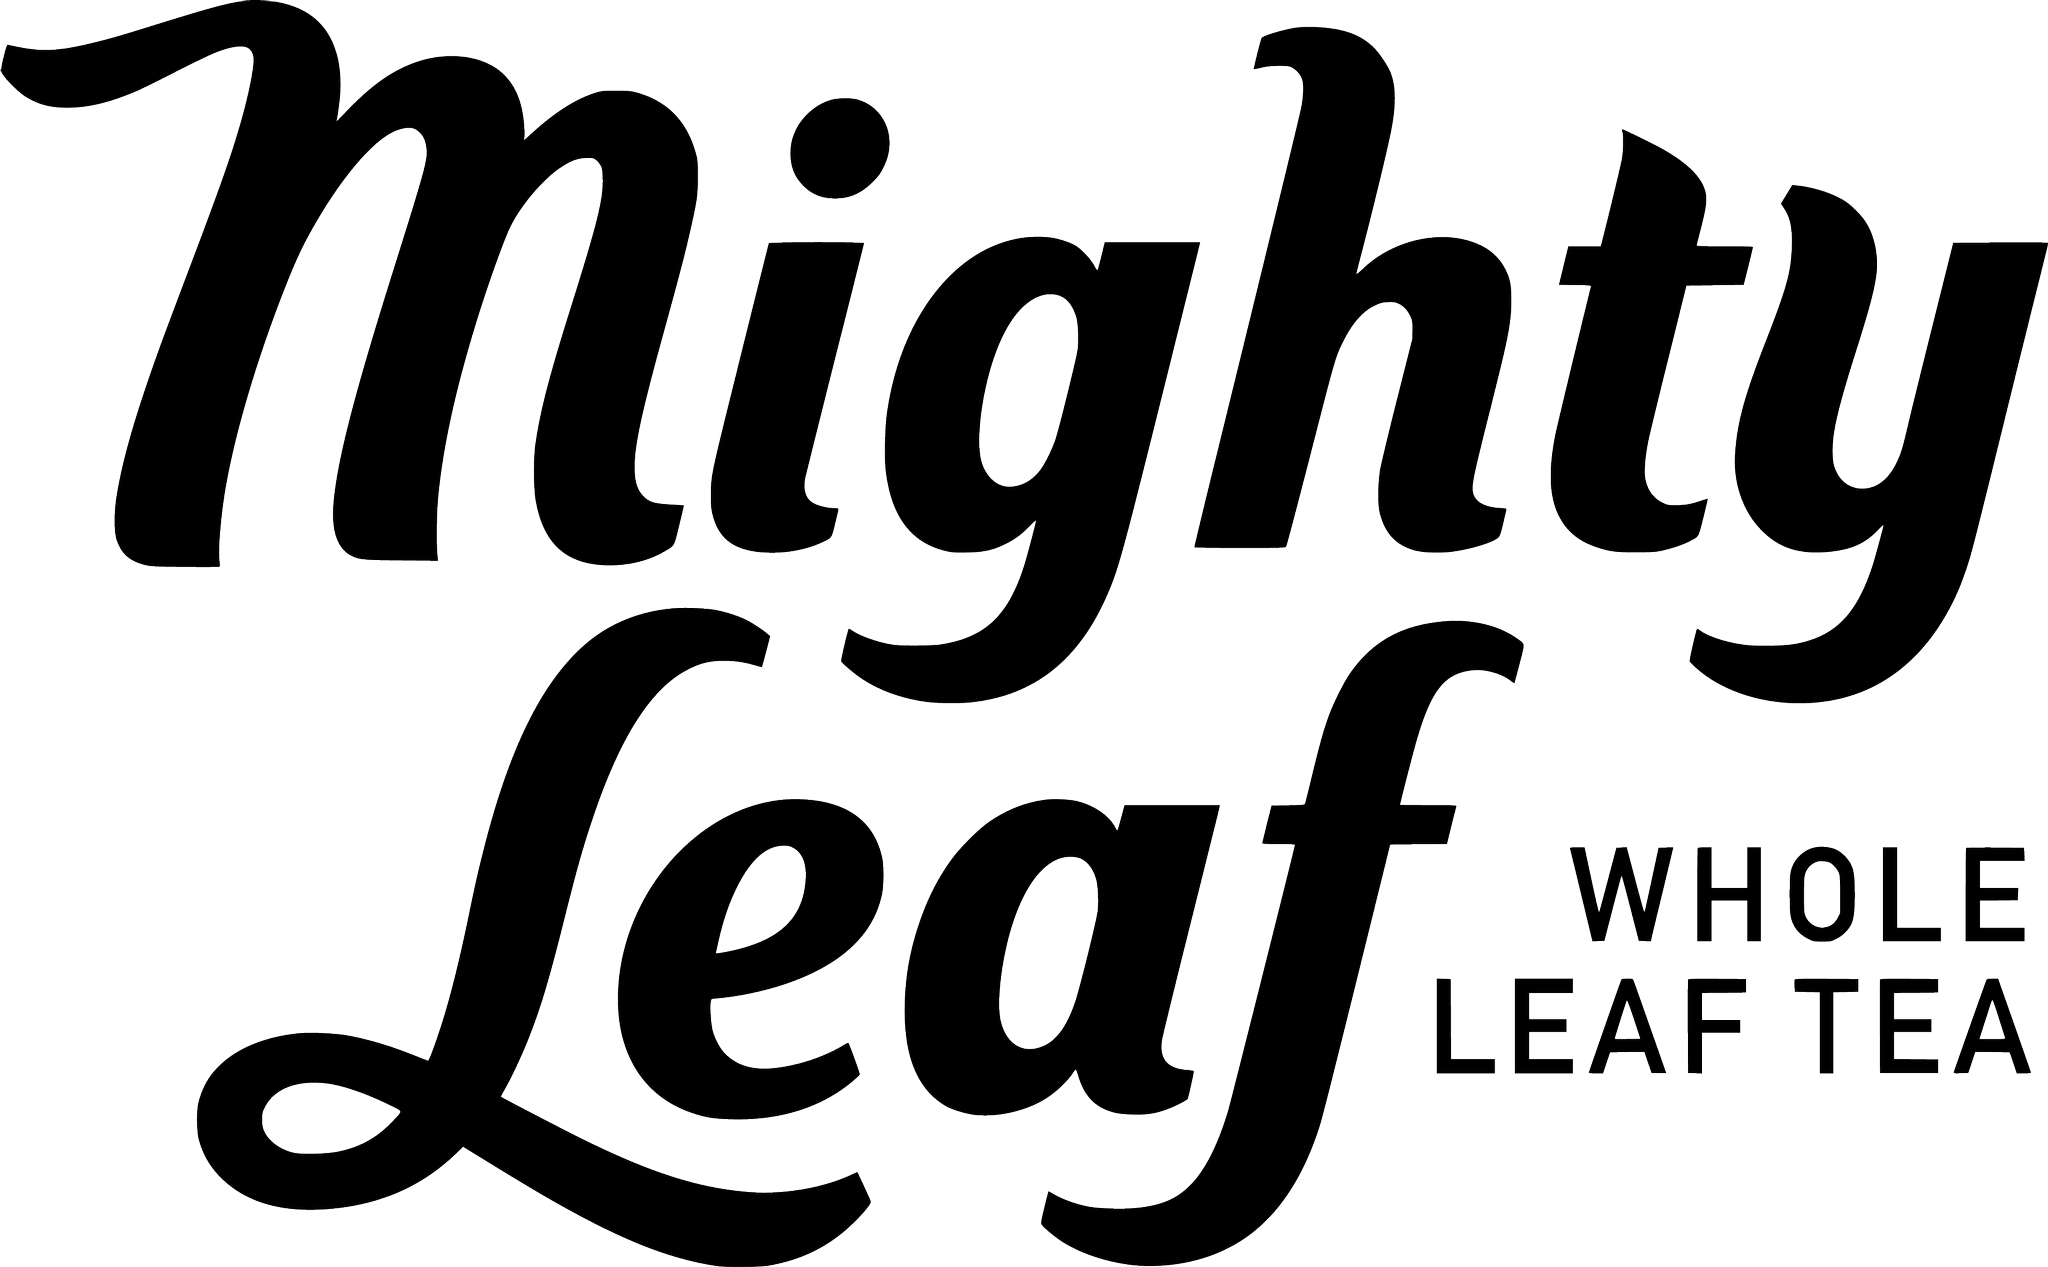 Mighty Leaf logo